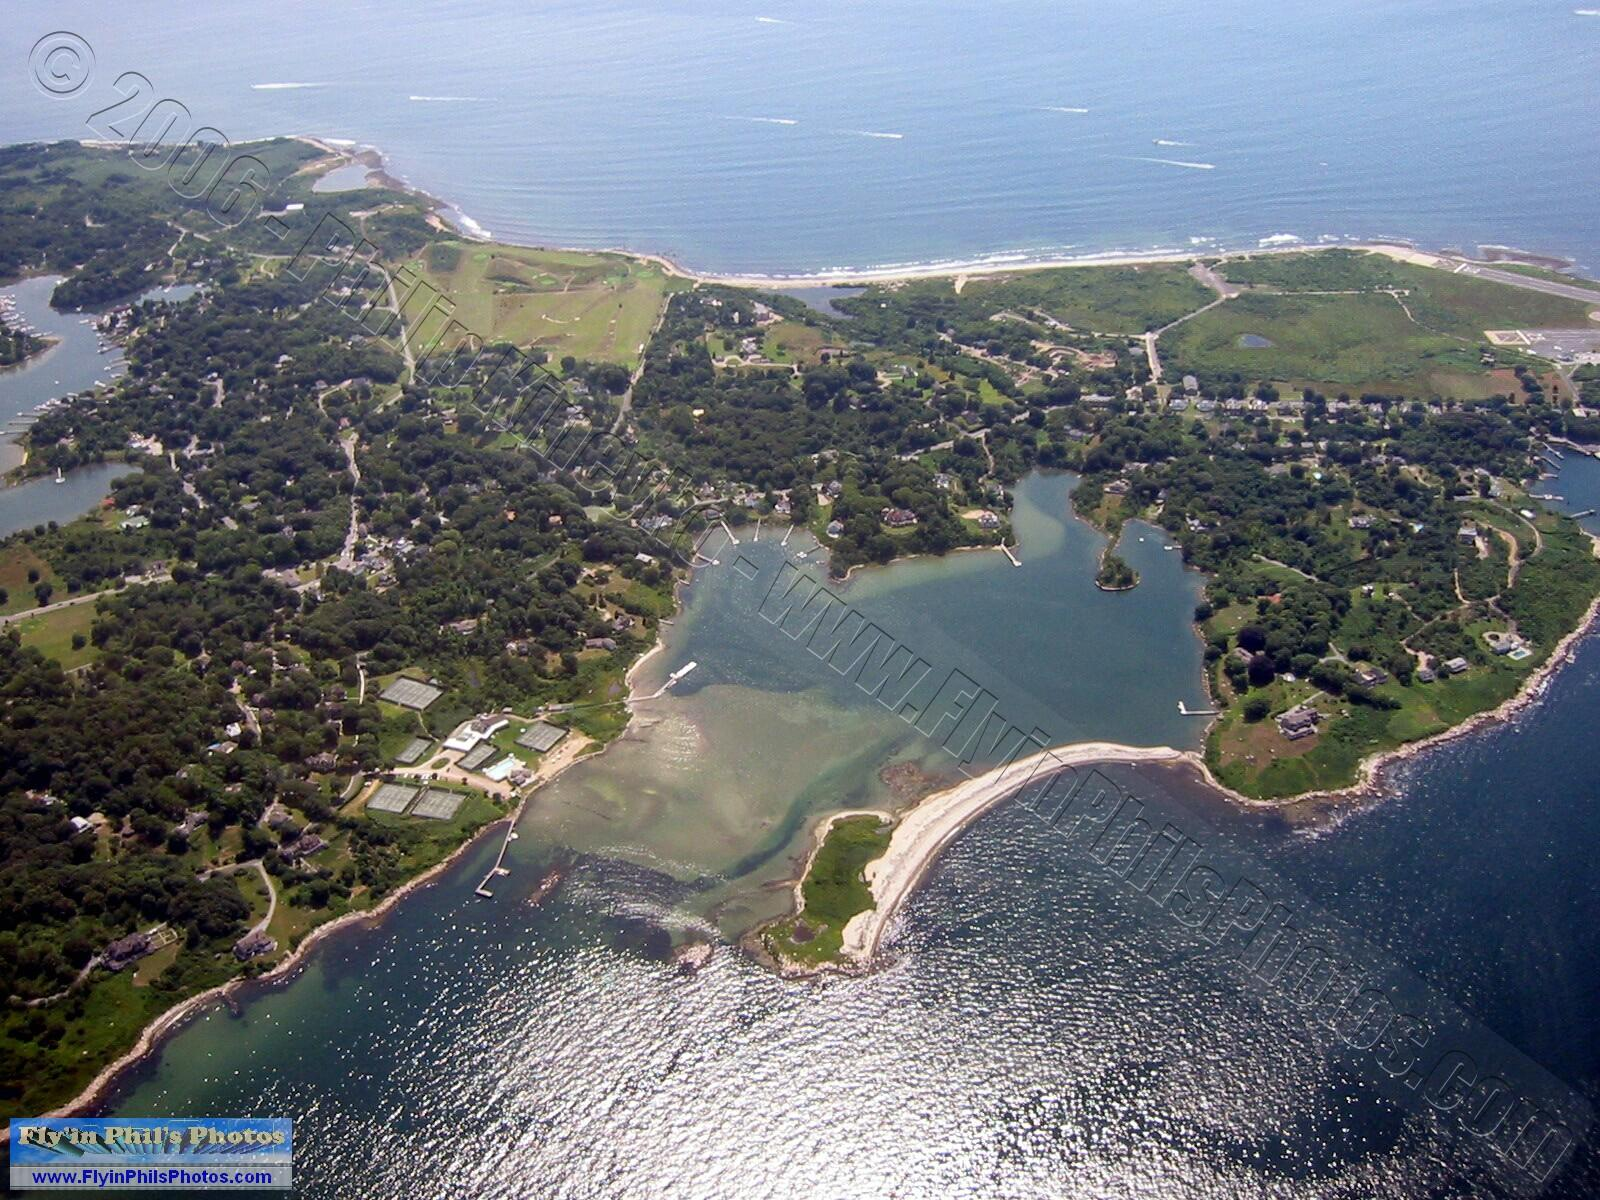 Flyin phils photos ocean shorelines aerial photo search page 0019 fishers island sciox Gallery